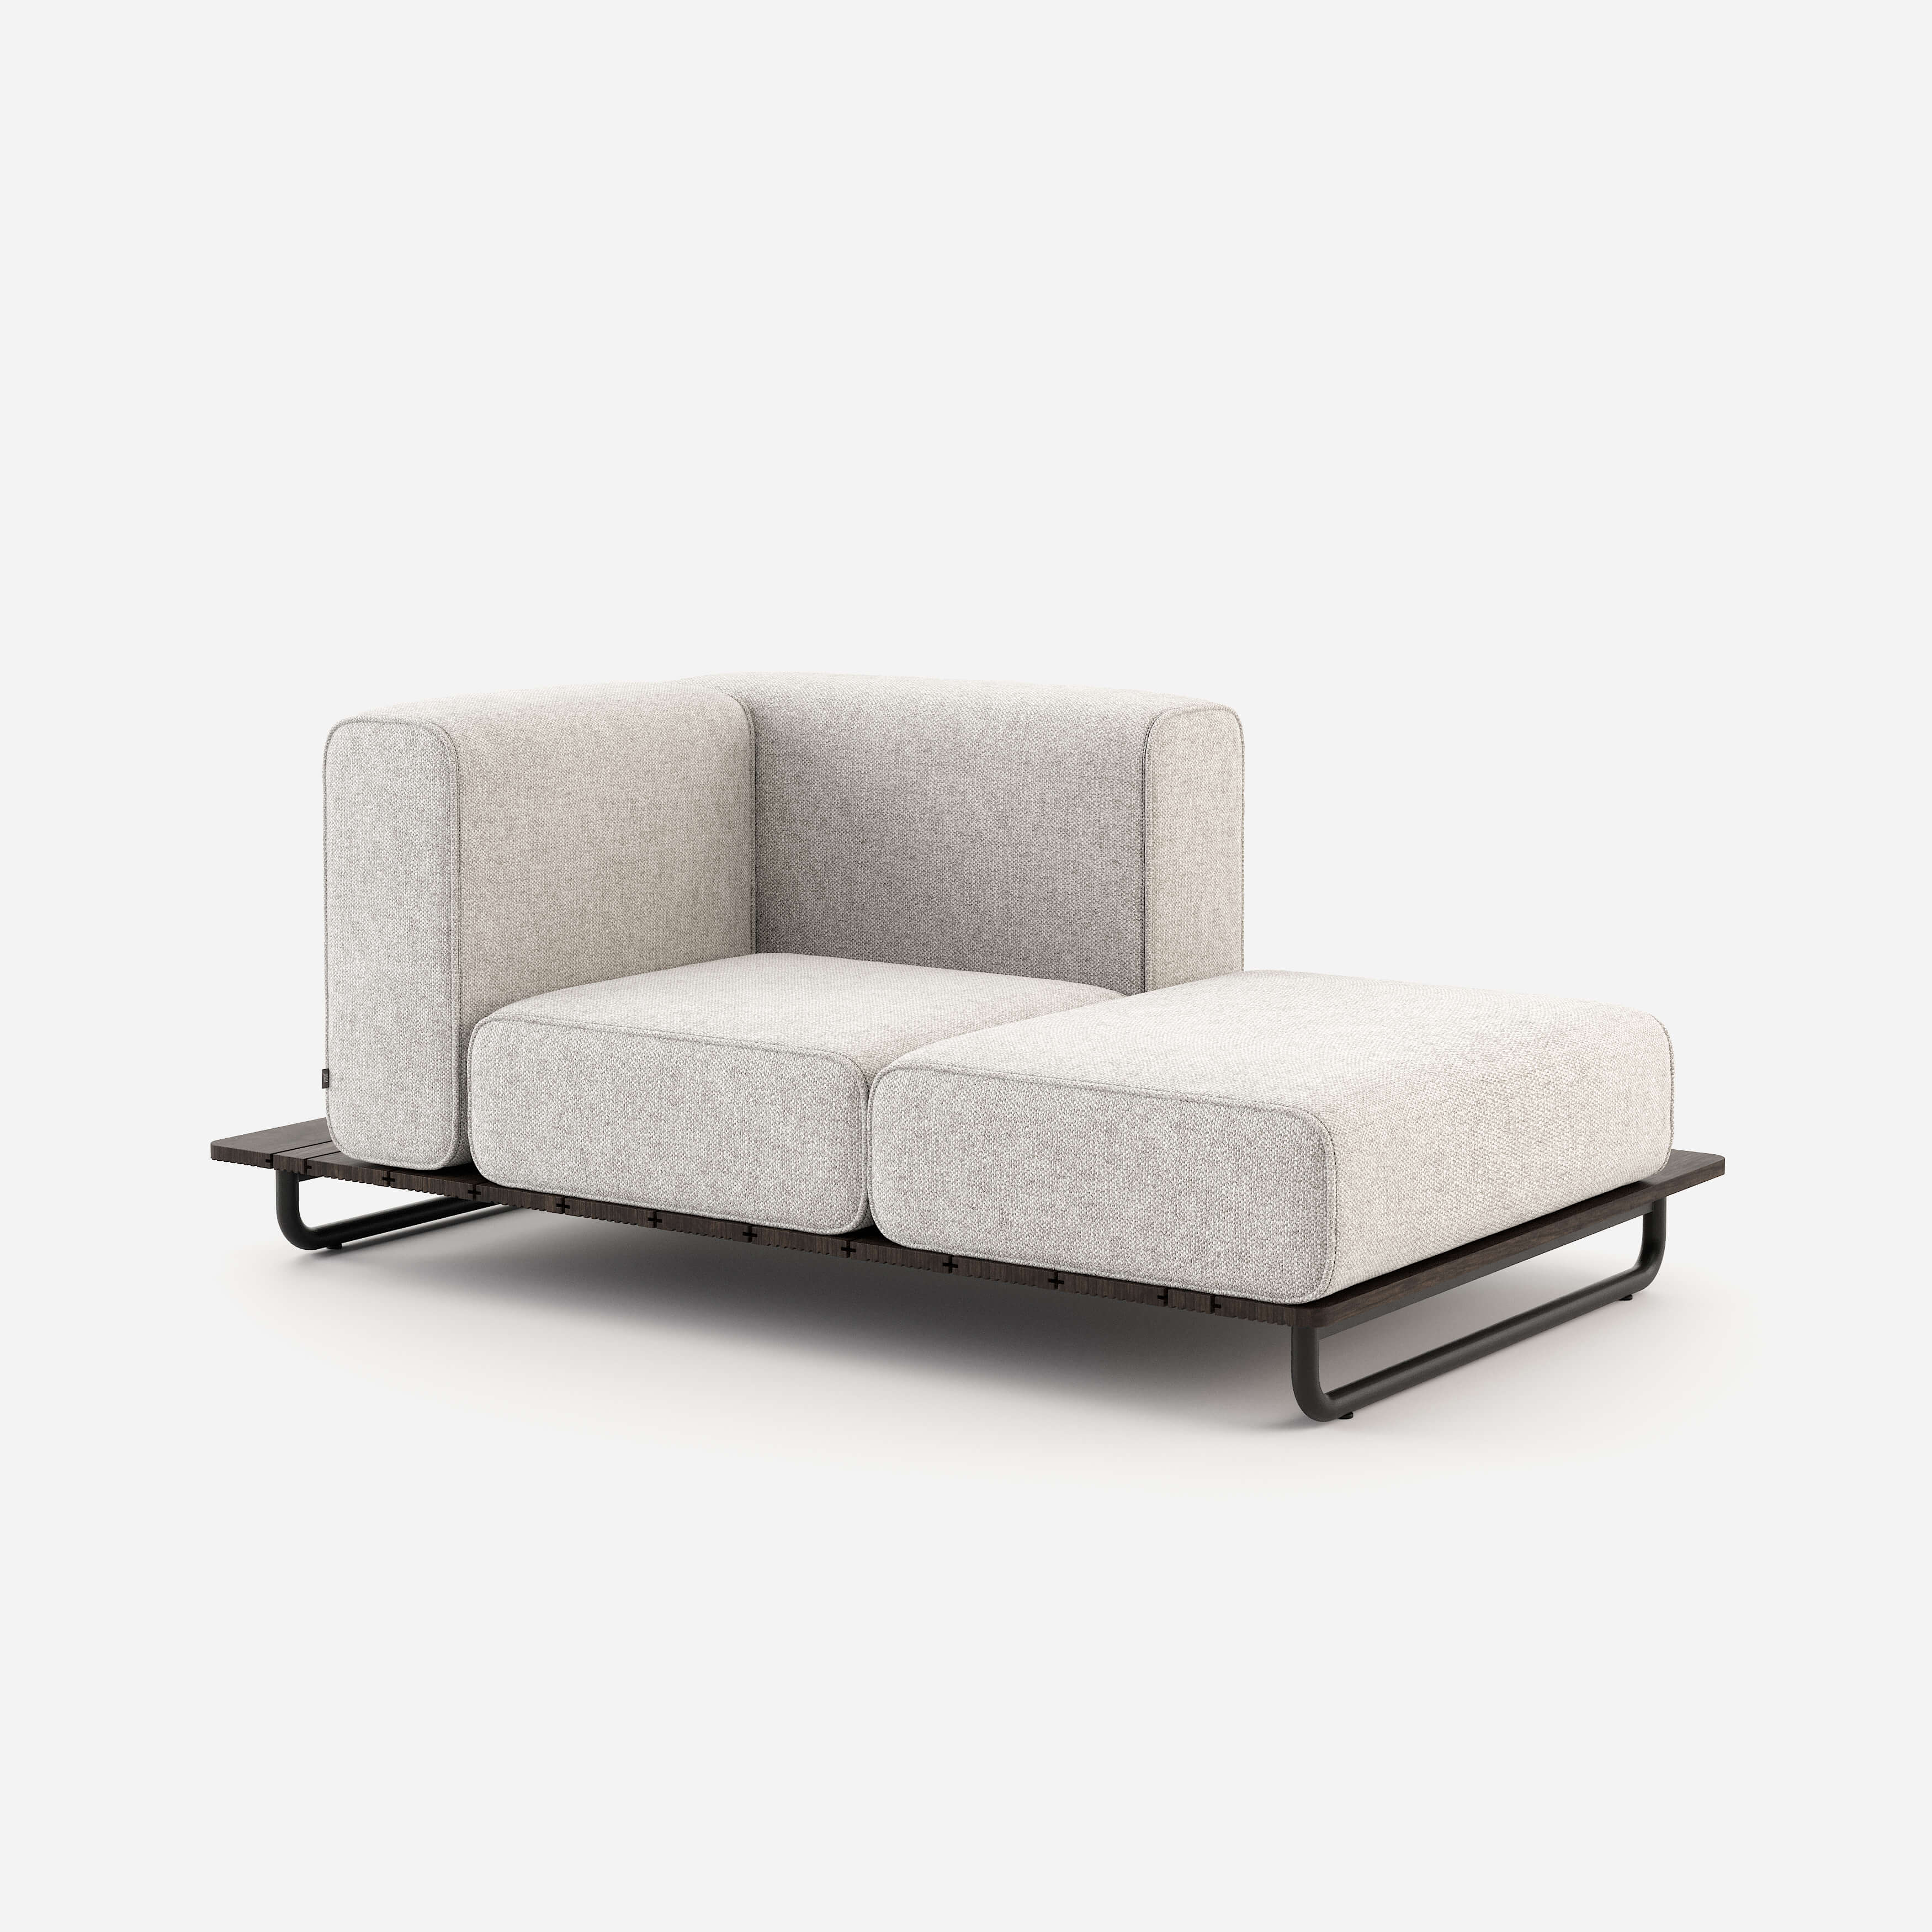 Copacabana-Left-Chaise-Long-domkapa-interior-design-outdoor-collection-upholstery-white-furniture-1